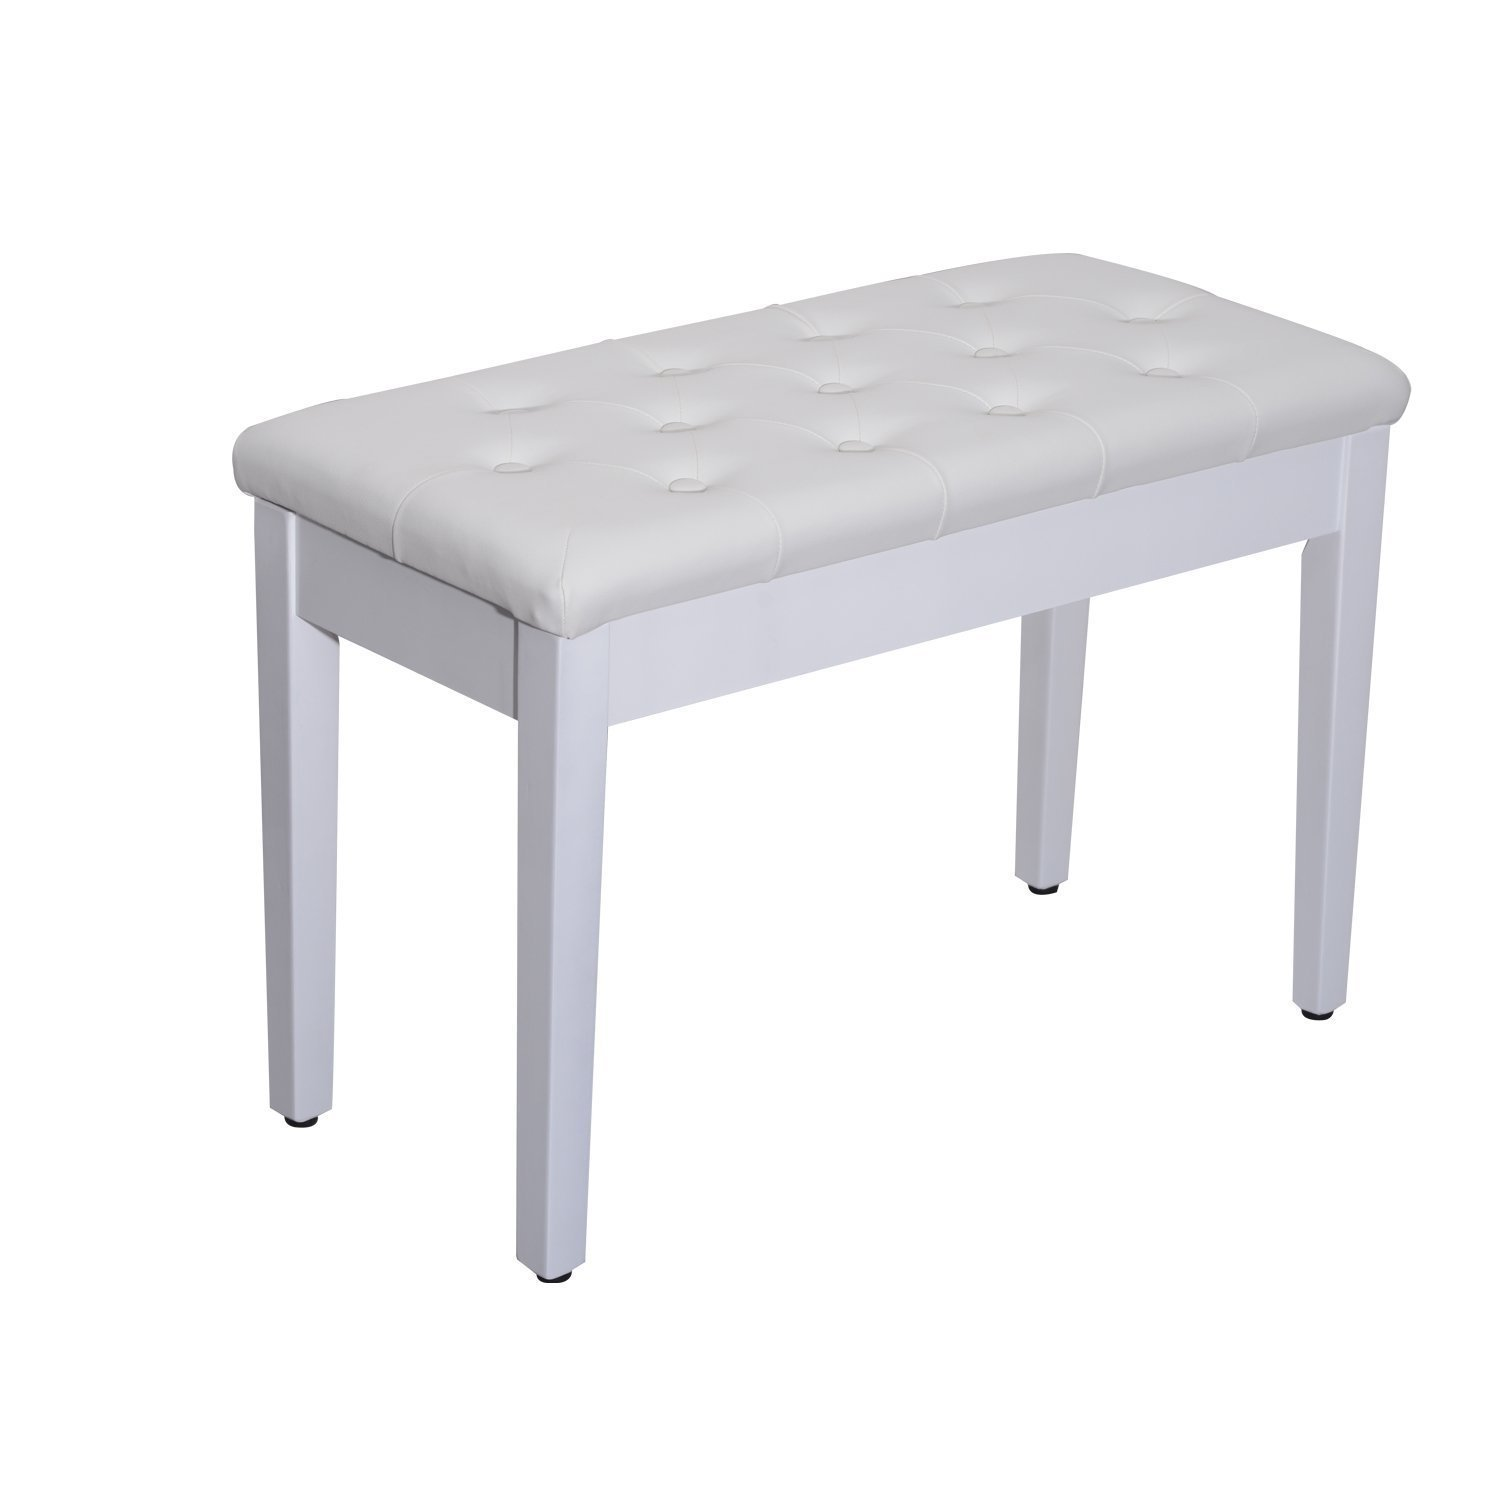 Faux Wood Leather Padded Double Duet Keyboard Seat Piano Bench Music Storage (White) GF29521